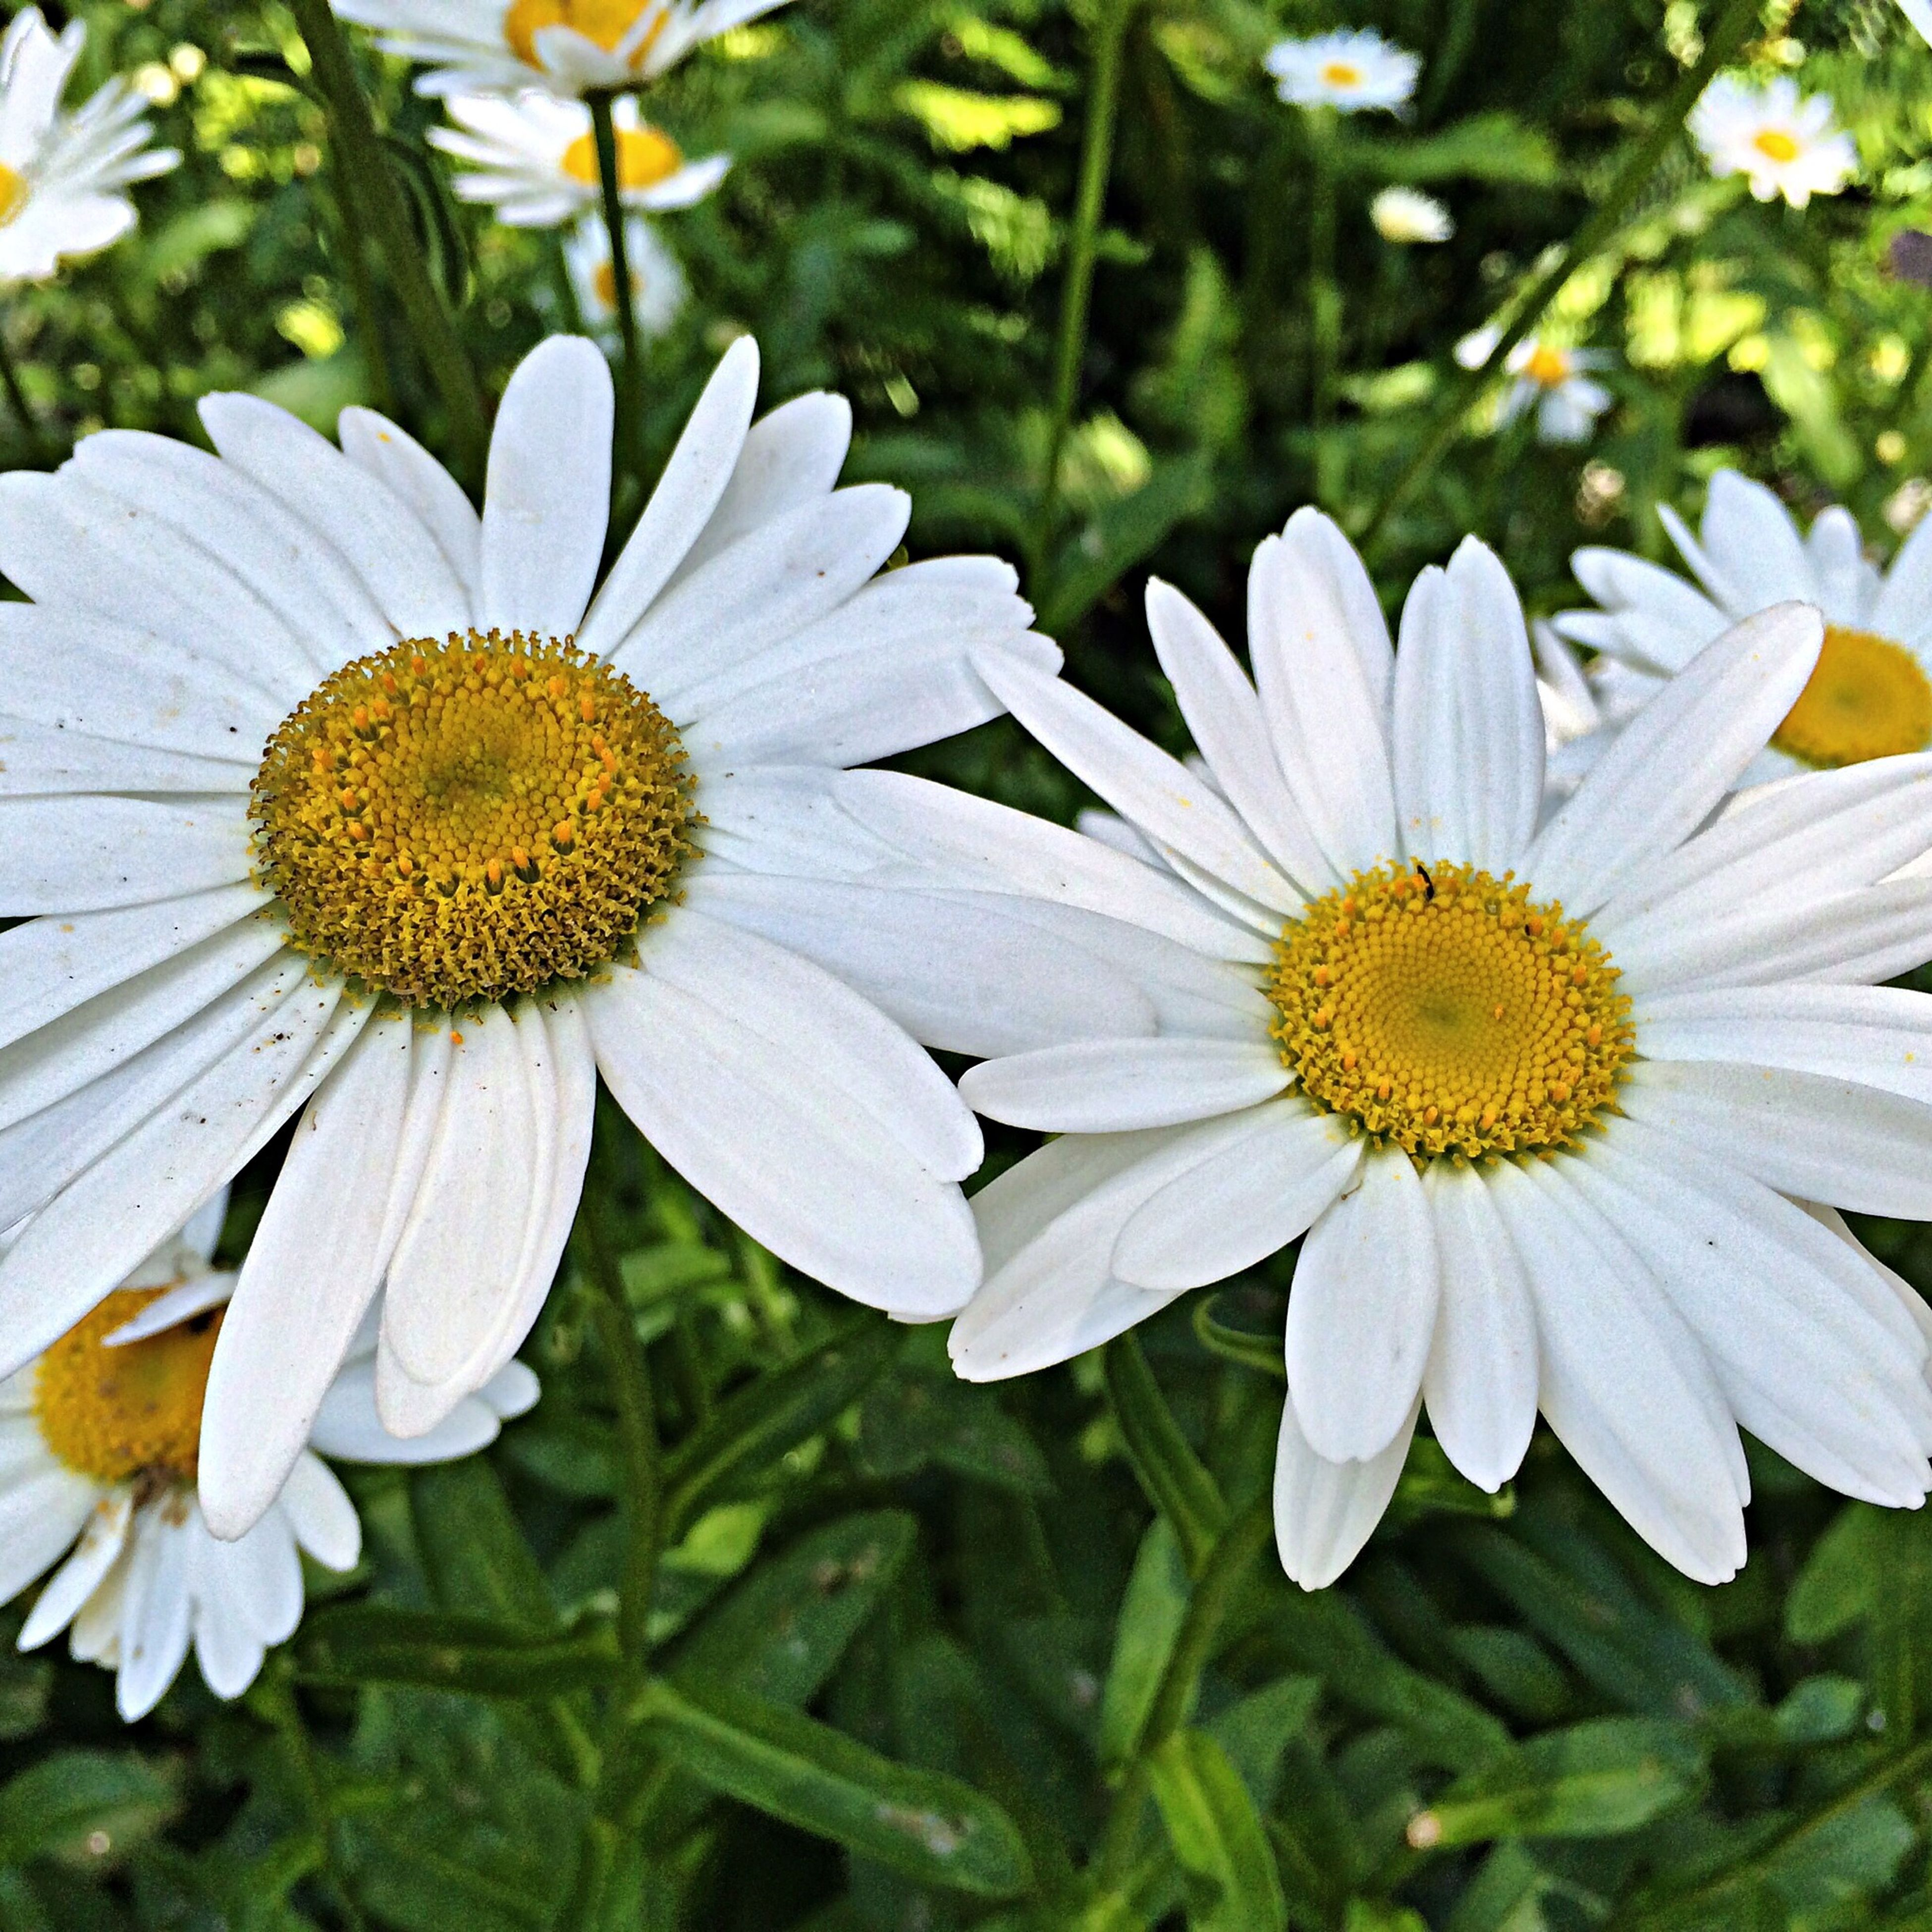 flower, freshness, petal, fragility, flower head, white color, growth, pollen, daisy, beauty in nature, blooming, nature, close-up, focus on foreground, plant, yellow, high angle view, outdoors, day, no people